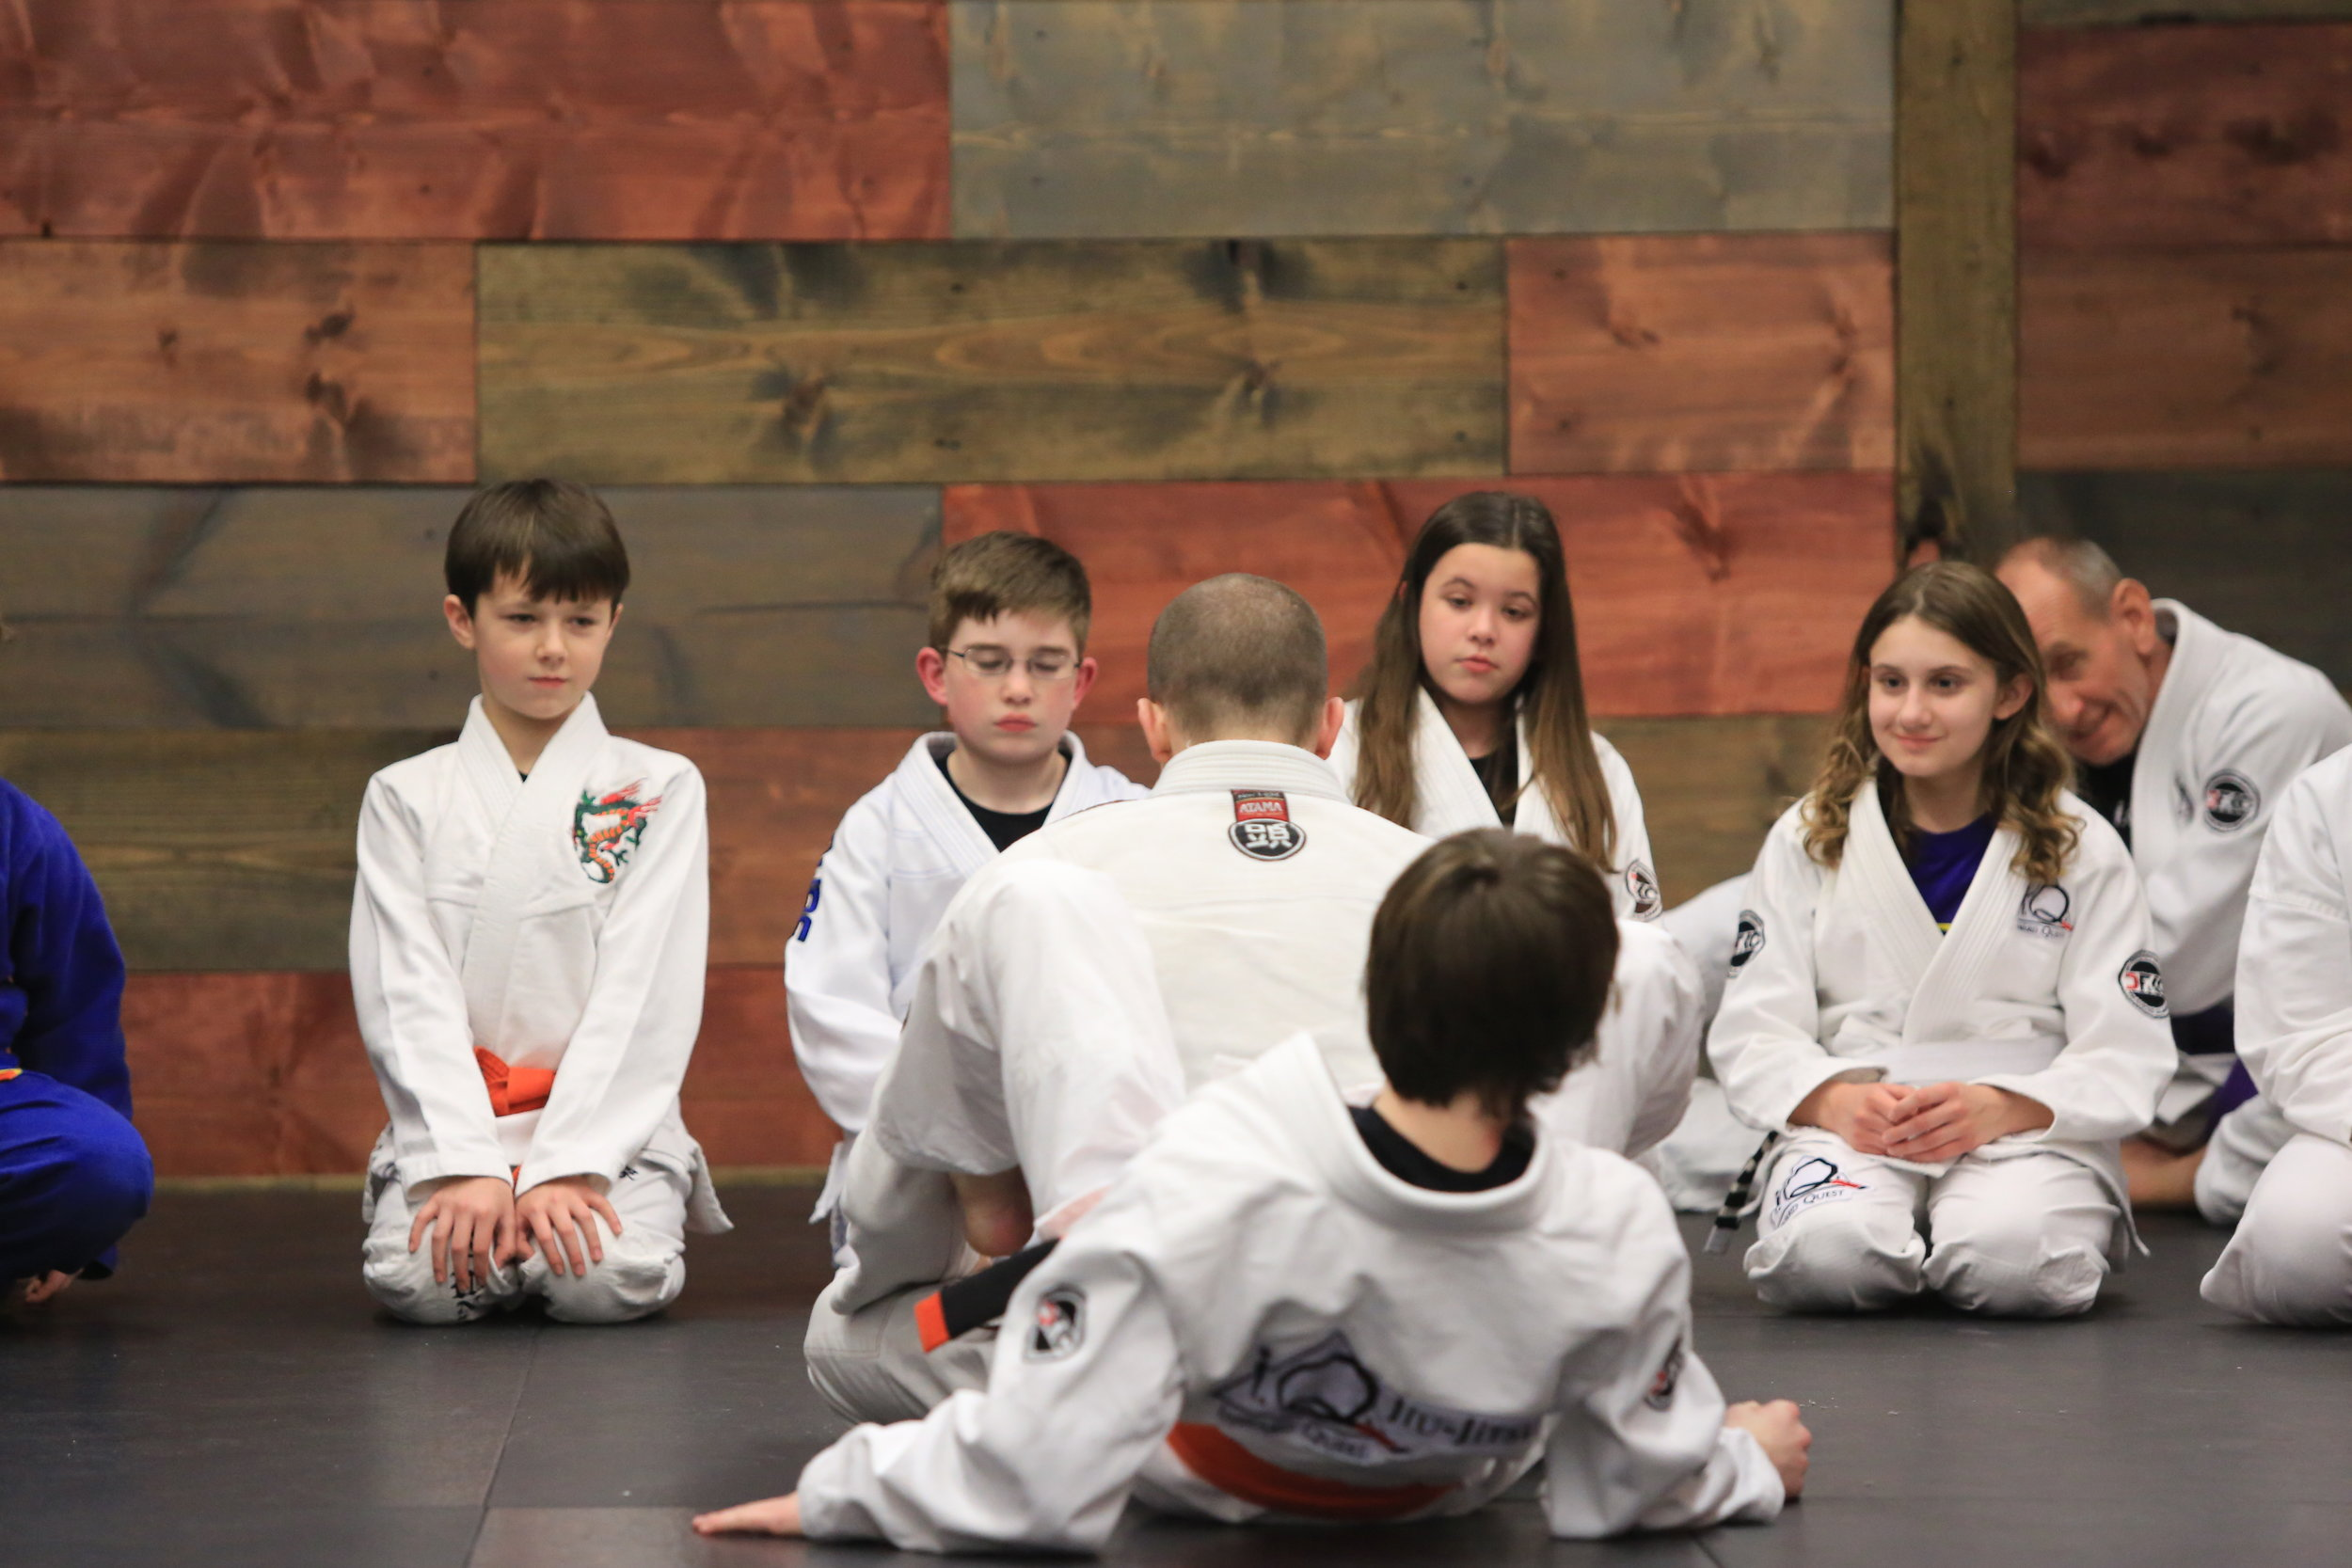 Martial arts provides kids with special needs with structure - When a child has special needs, they struggle with certain things that other kids might find easy. In our martial arts school, they learn in a structured environment that emphasizes self-respect.All children need exercise but it can sometimes be hard for kids with special needs to keep up on the playing field.Martial arts instruction focuses on competing with yourself – something that allows kids with special needs to excel on their own terms.